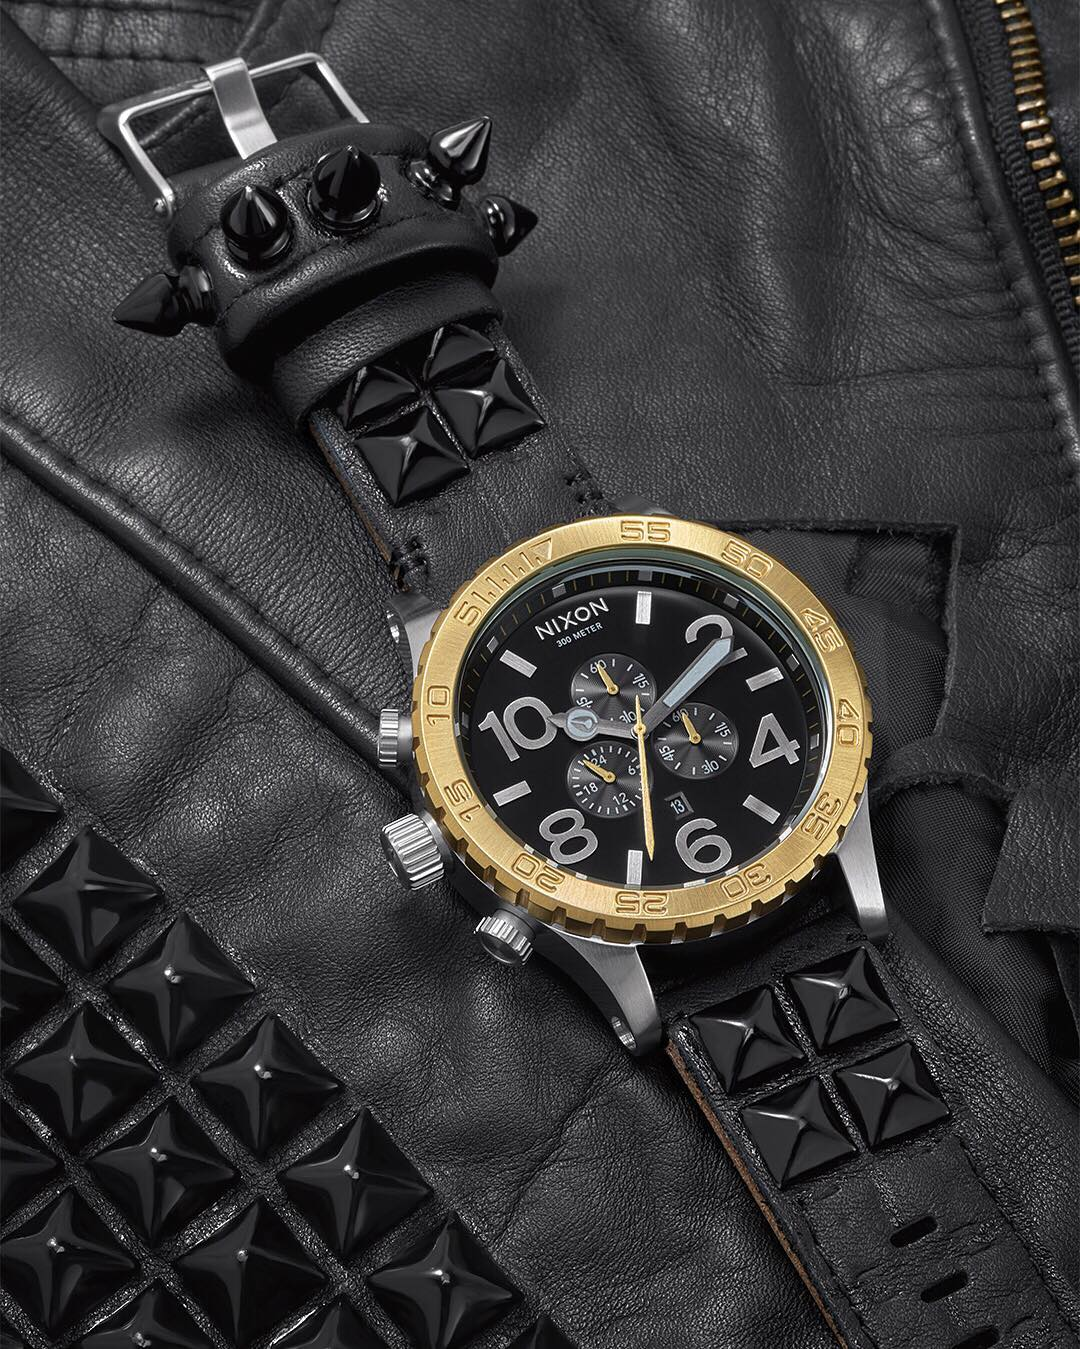 Own a piece of rock 'n roll history. The @slash #Nixon Rock LTD #5130 Chrono. Limited and now available.